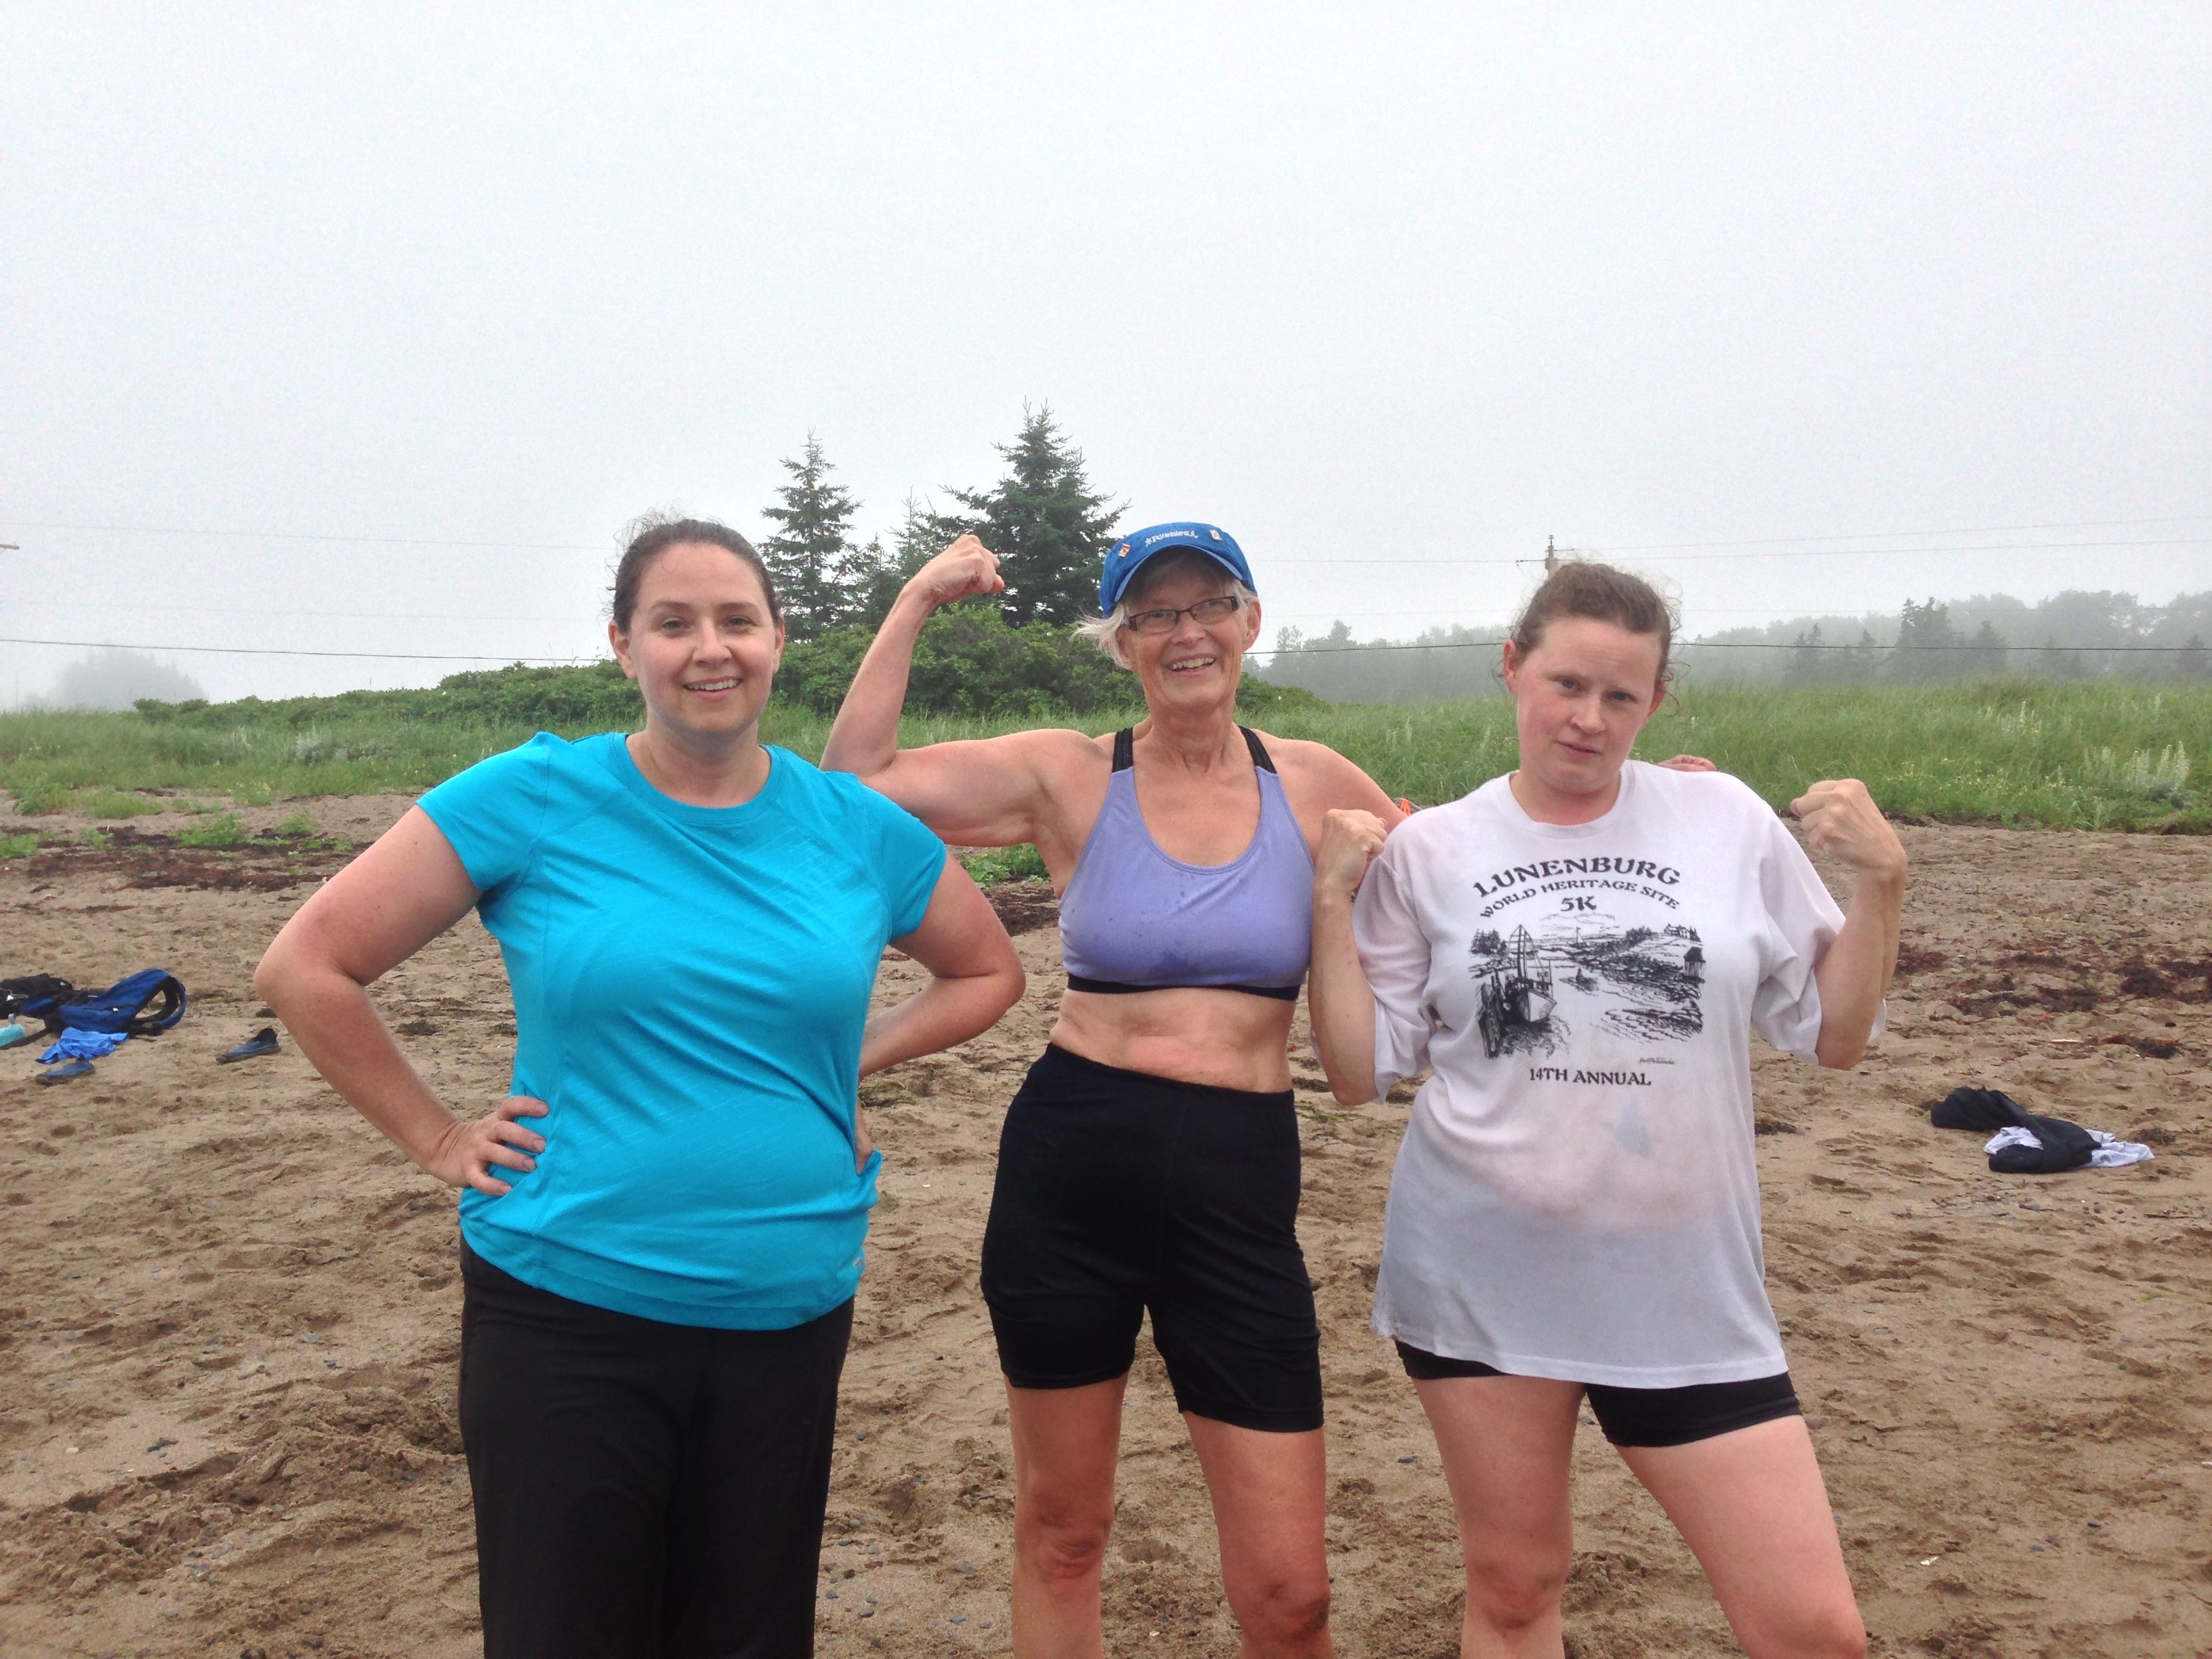 The Roblee women in Summer-Size Me! with momma in the middle, sisters on each side. Awesome!  Summer-Size Me! will be back in 2014. Wicked intense 9 day weight loss challenge!